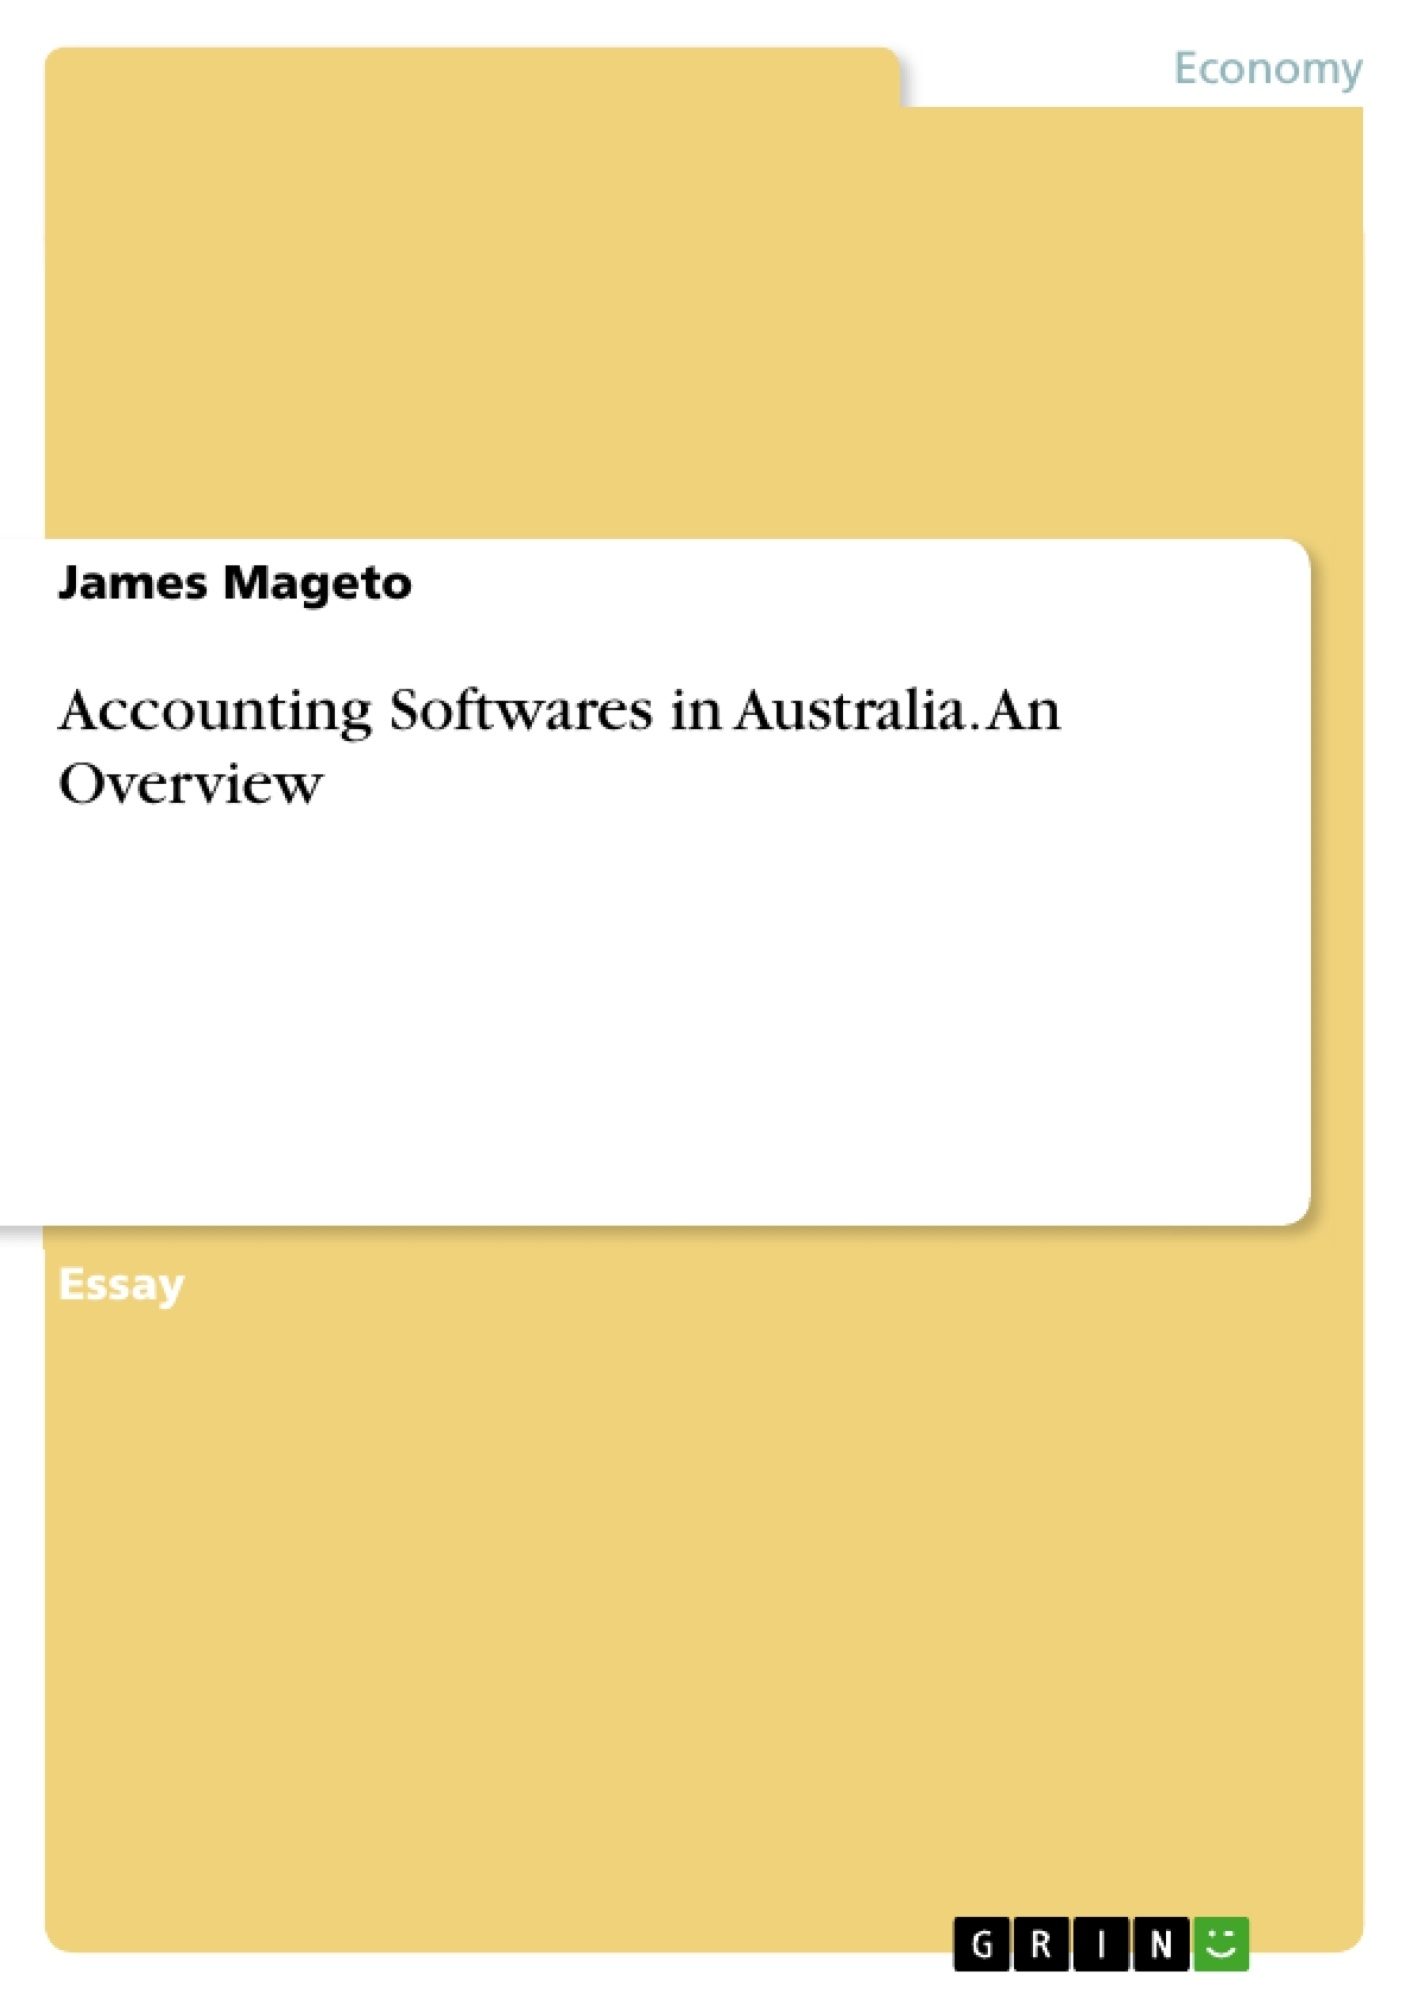 Title: Accounting Softwares in Australia. An Overview